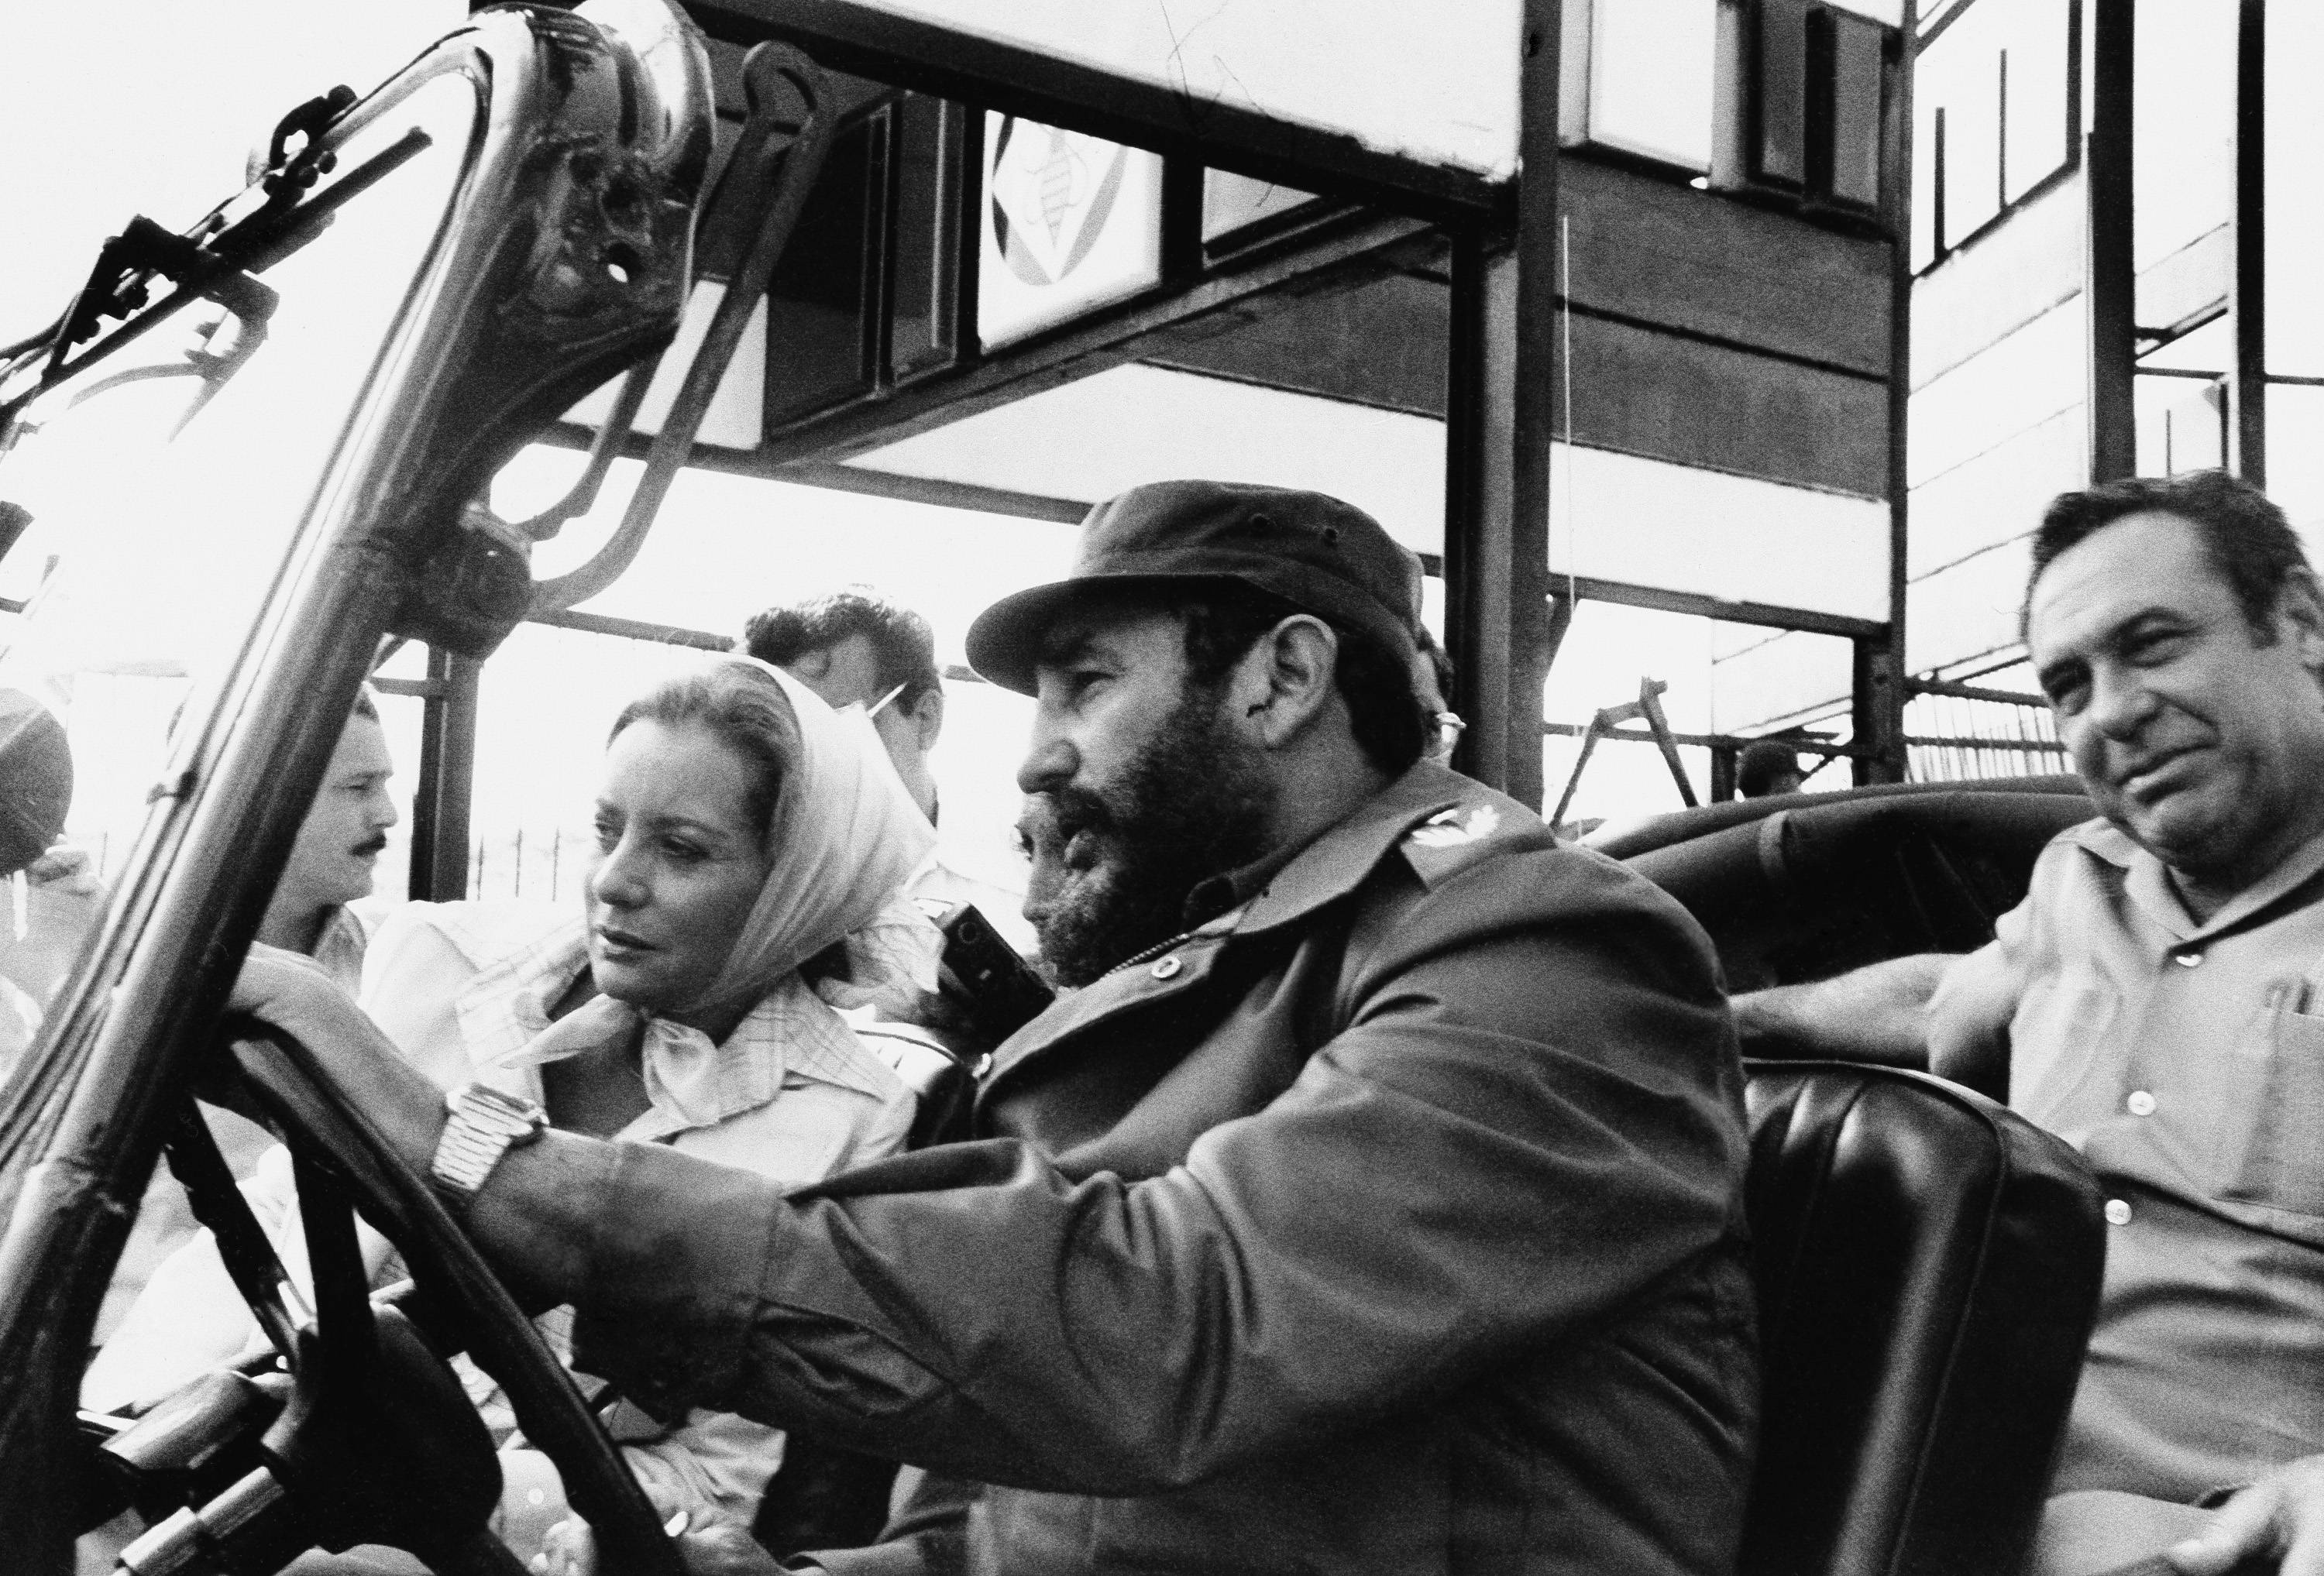 In 1977 ABC news correspondent Barbara Walters was driven by Cuban leader Fidel Castro on a sightseeing tour in Cuba. Over the years, Walters has interviewed numerous newsmakers.